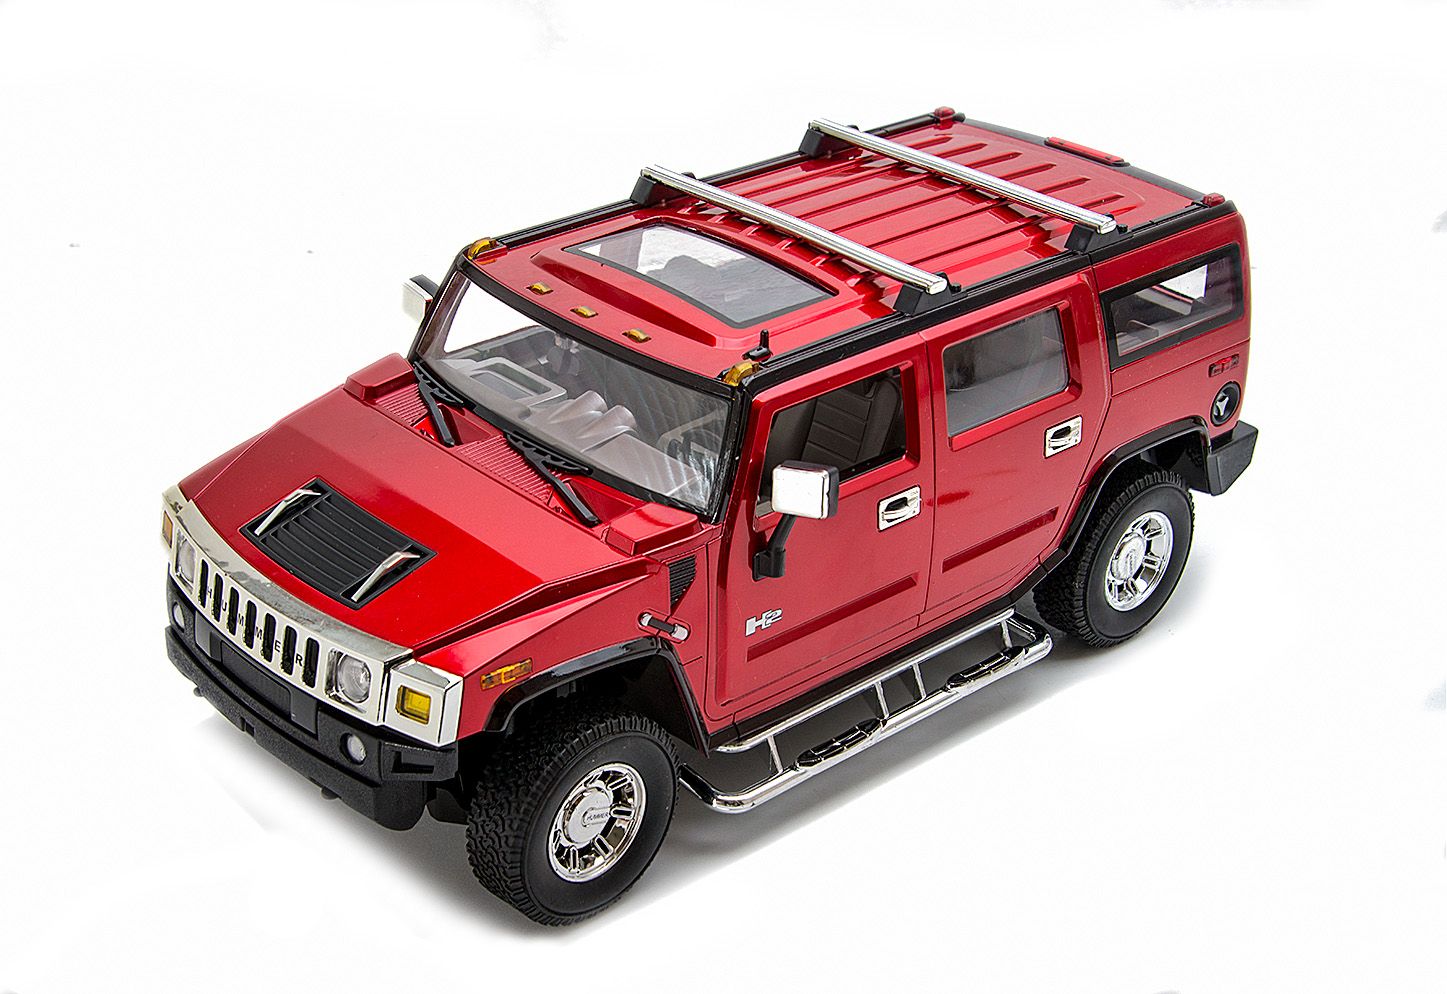 hummer h2 ferngesteuert modellauto rc mit licht lizenz car. Black Bedroom Furniture Sets. Home Design Ideas